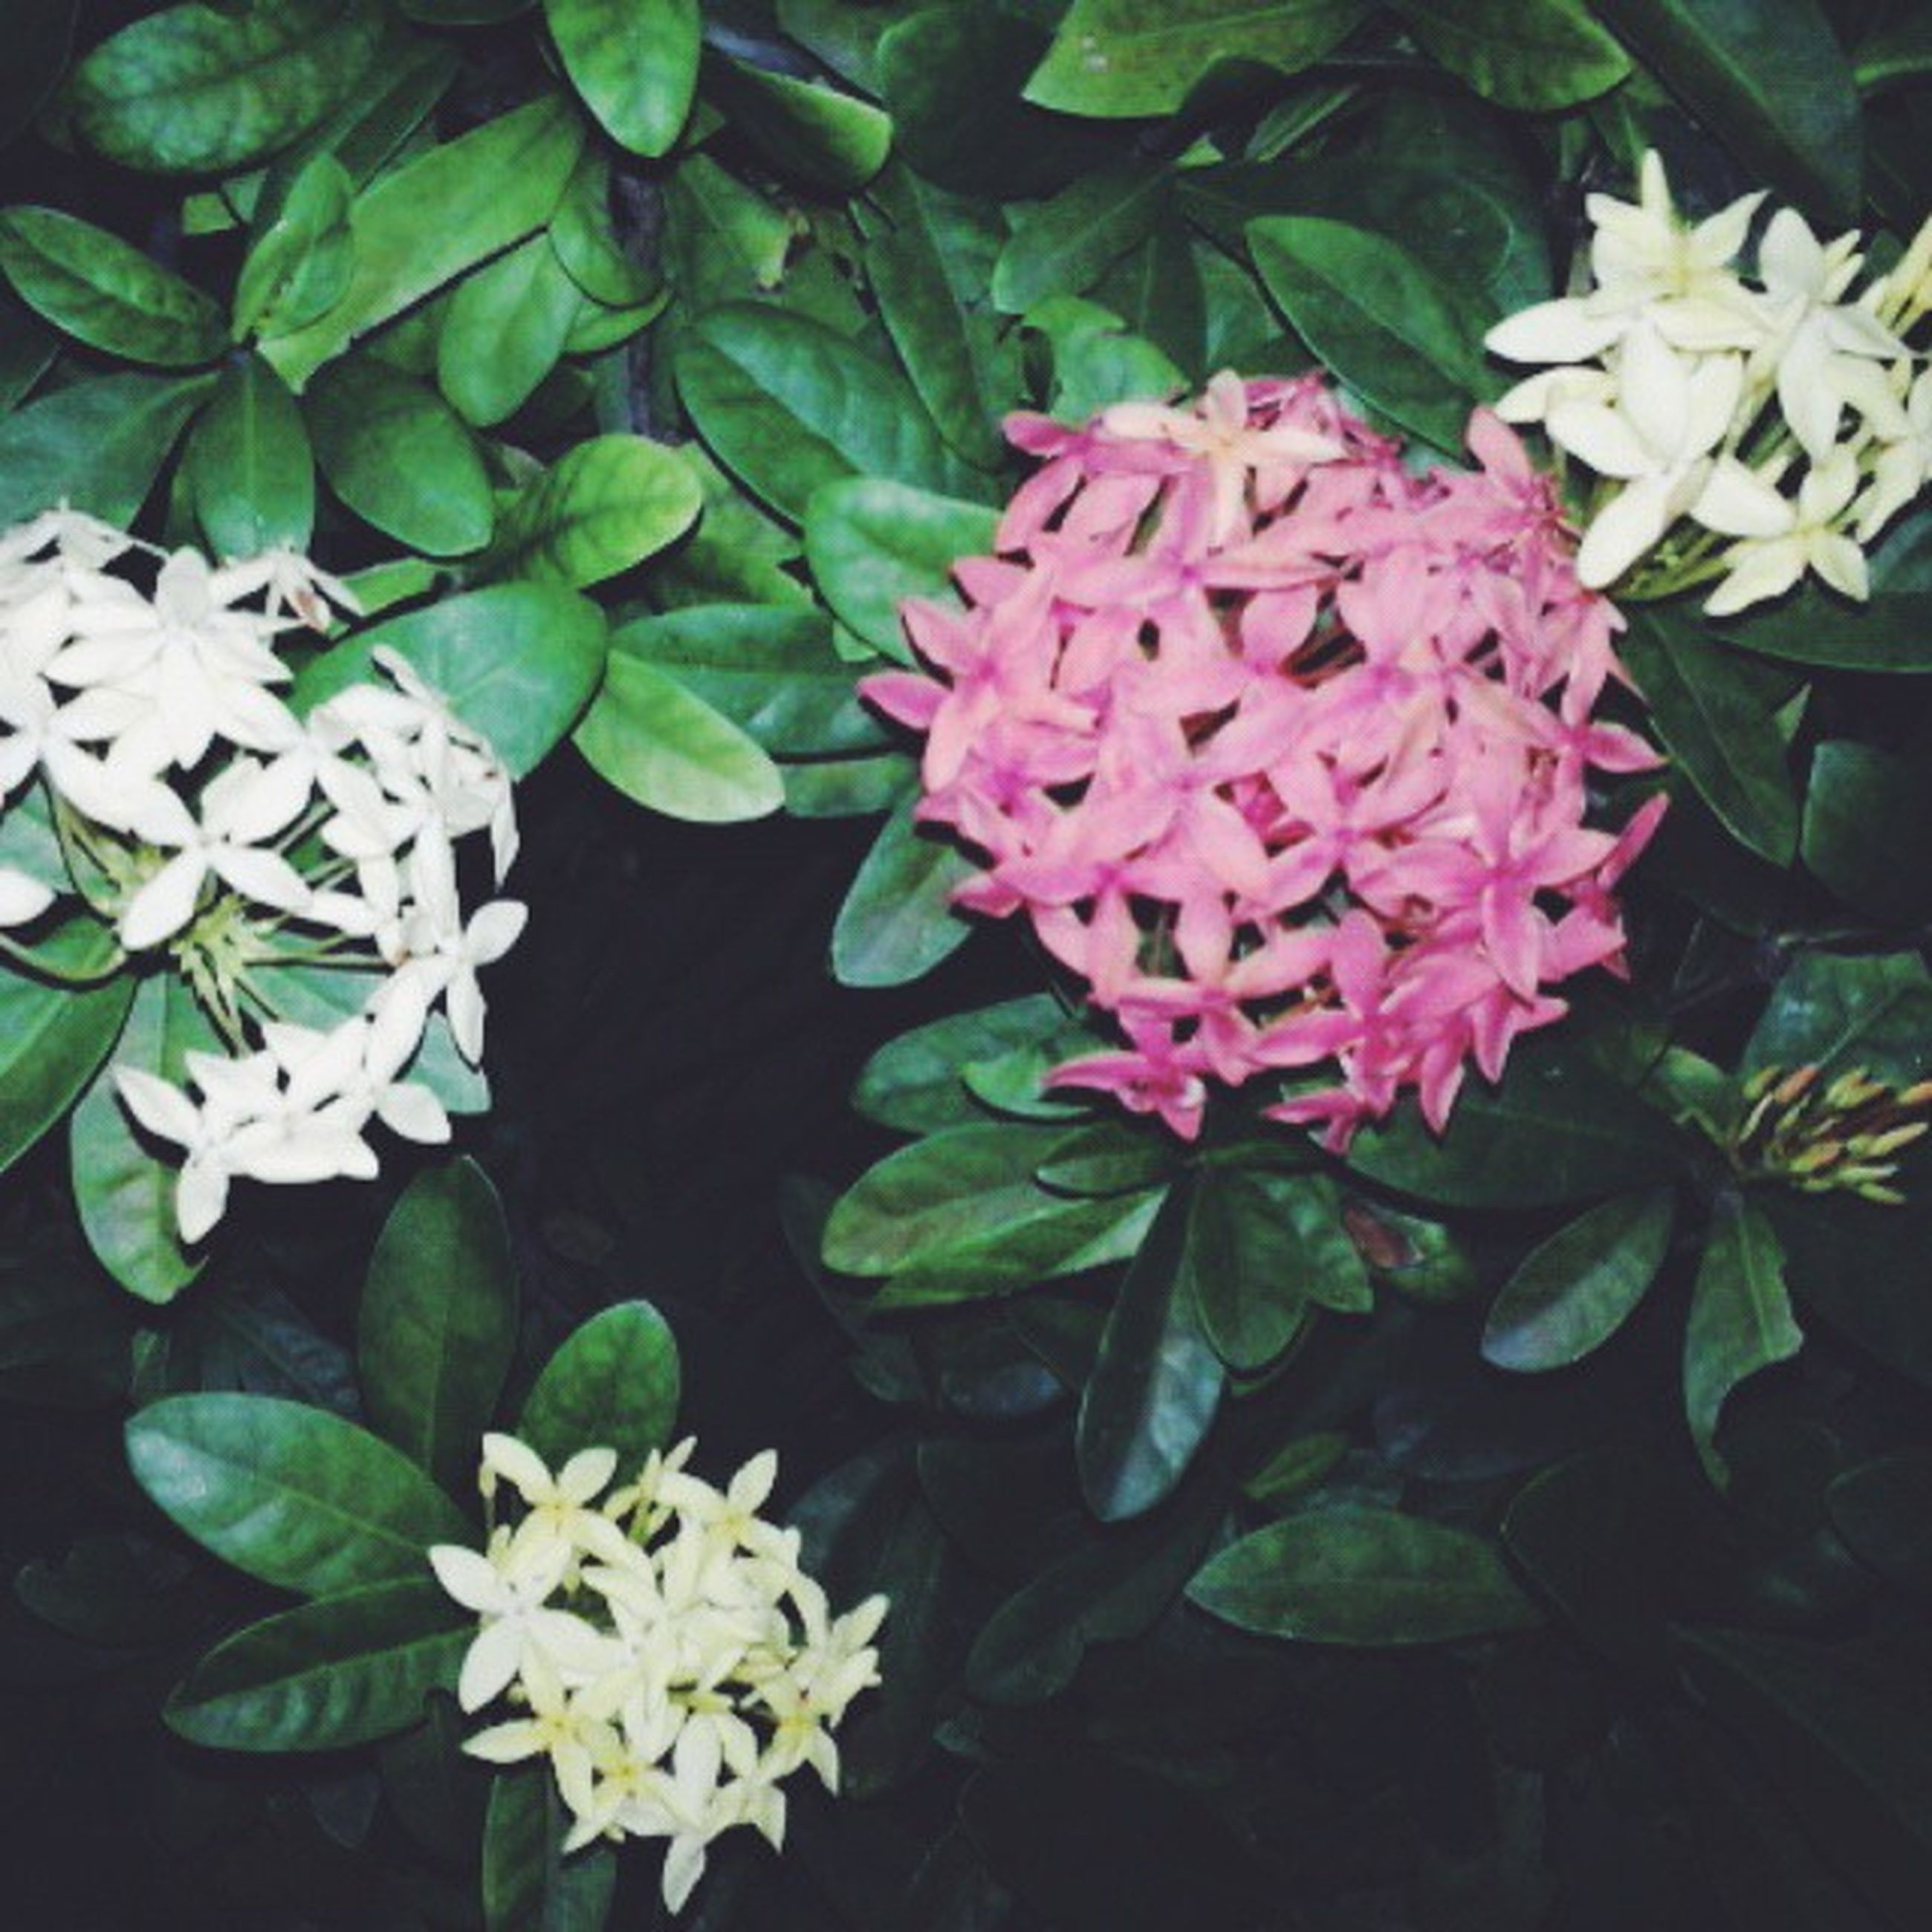 flower, freshness, petal, fragility, flower head, growth, beauty in nature, leaf, blooming, white color, plant, nature, high angle view, in bloom, close-up, blossom, botany, bunch of flowers, pink color, park - man made space